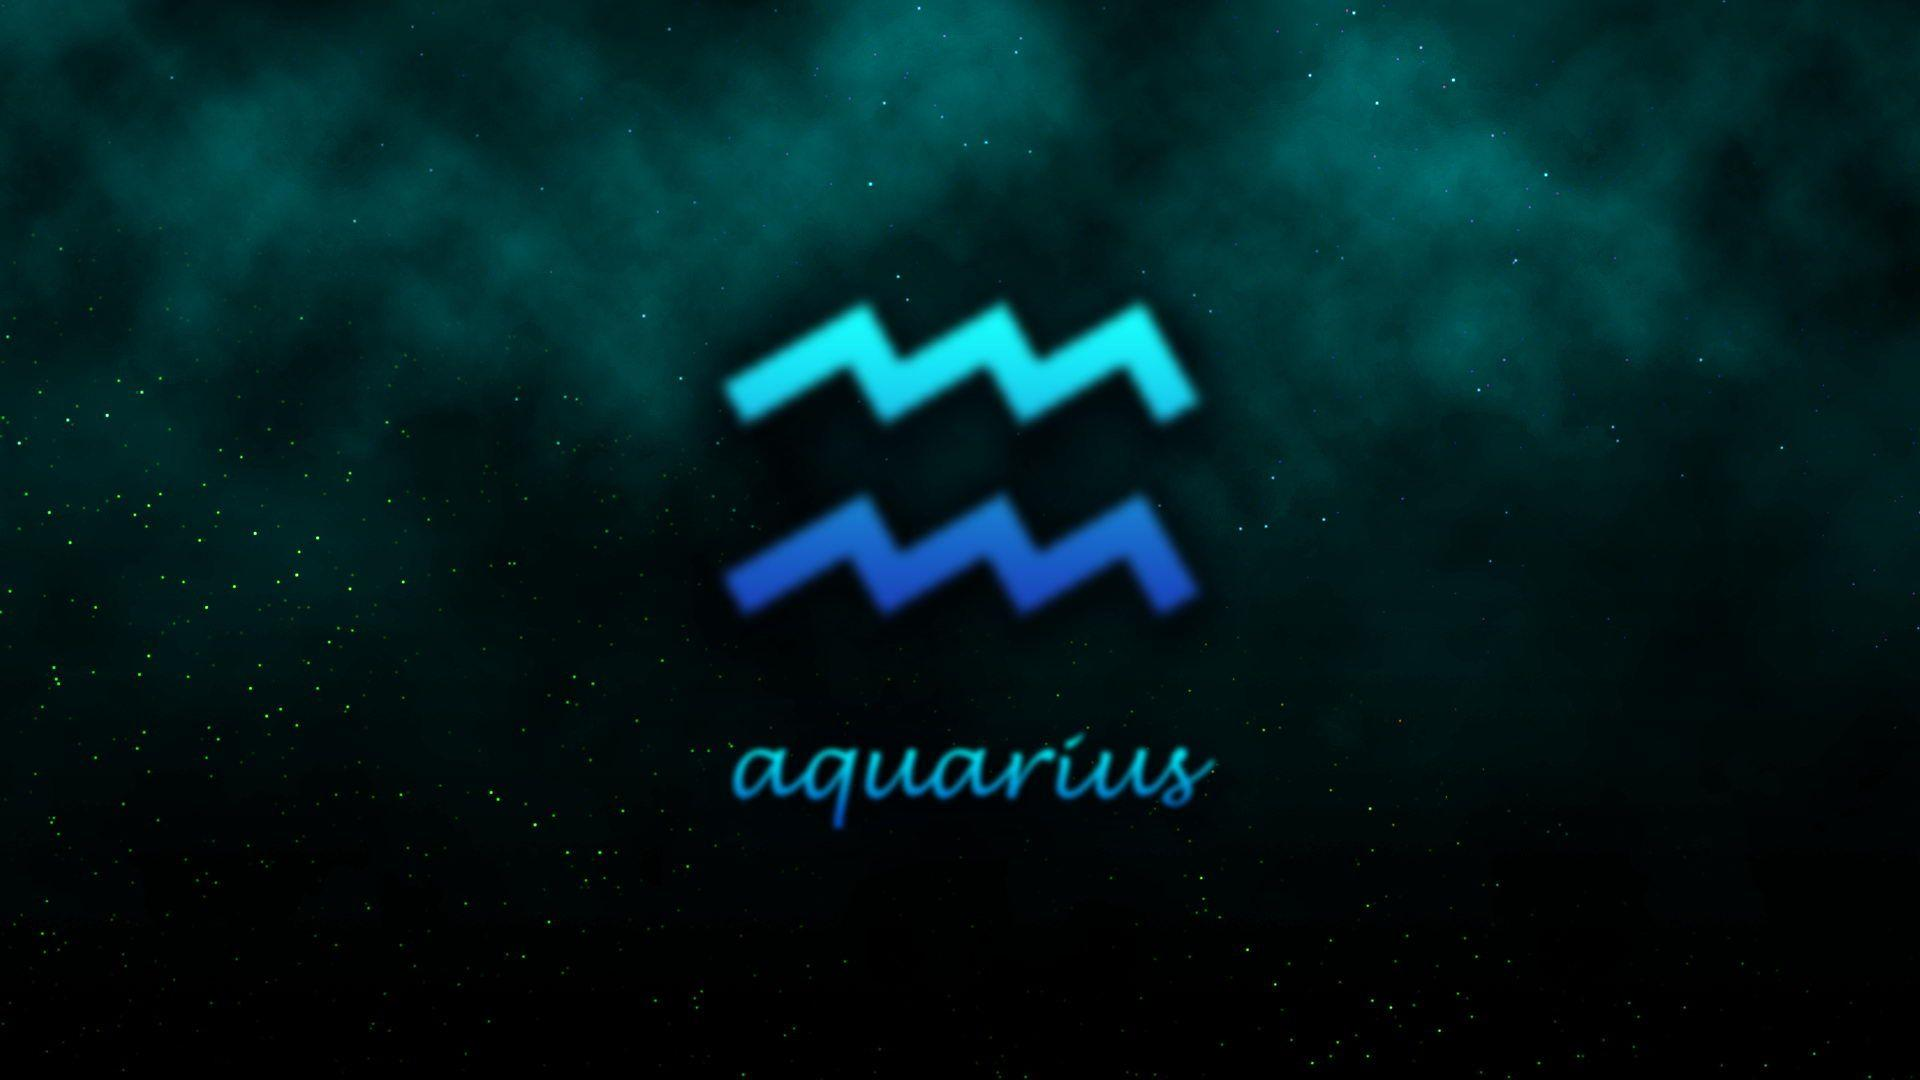 aquarius flower wallpaper hd - photo #5